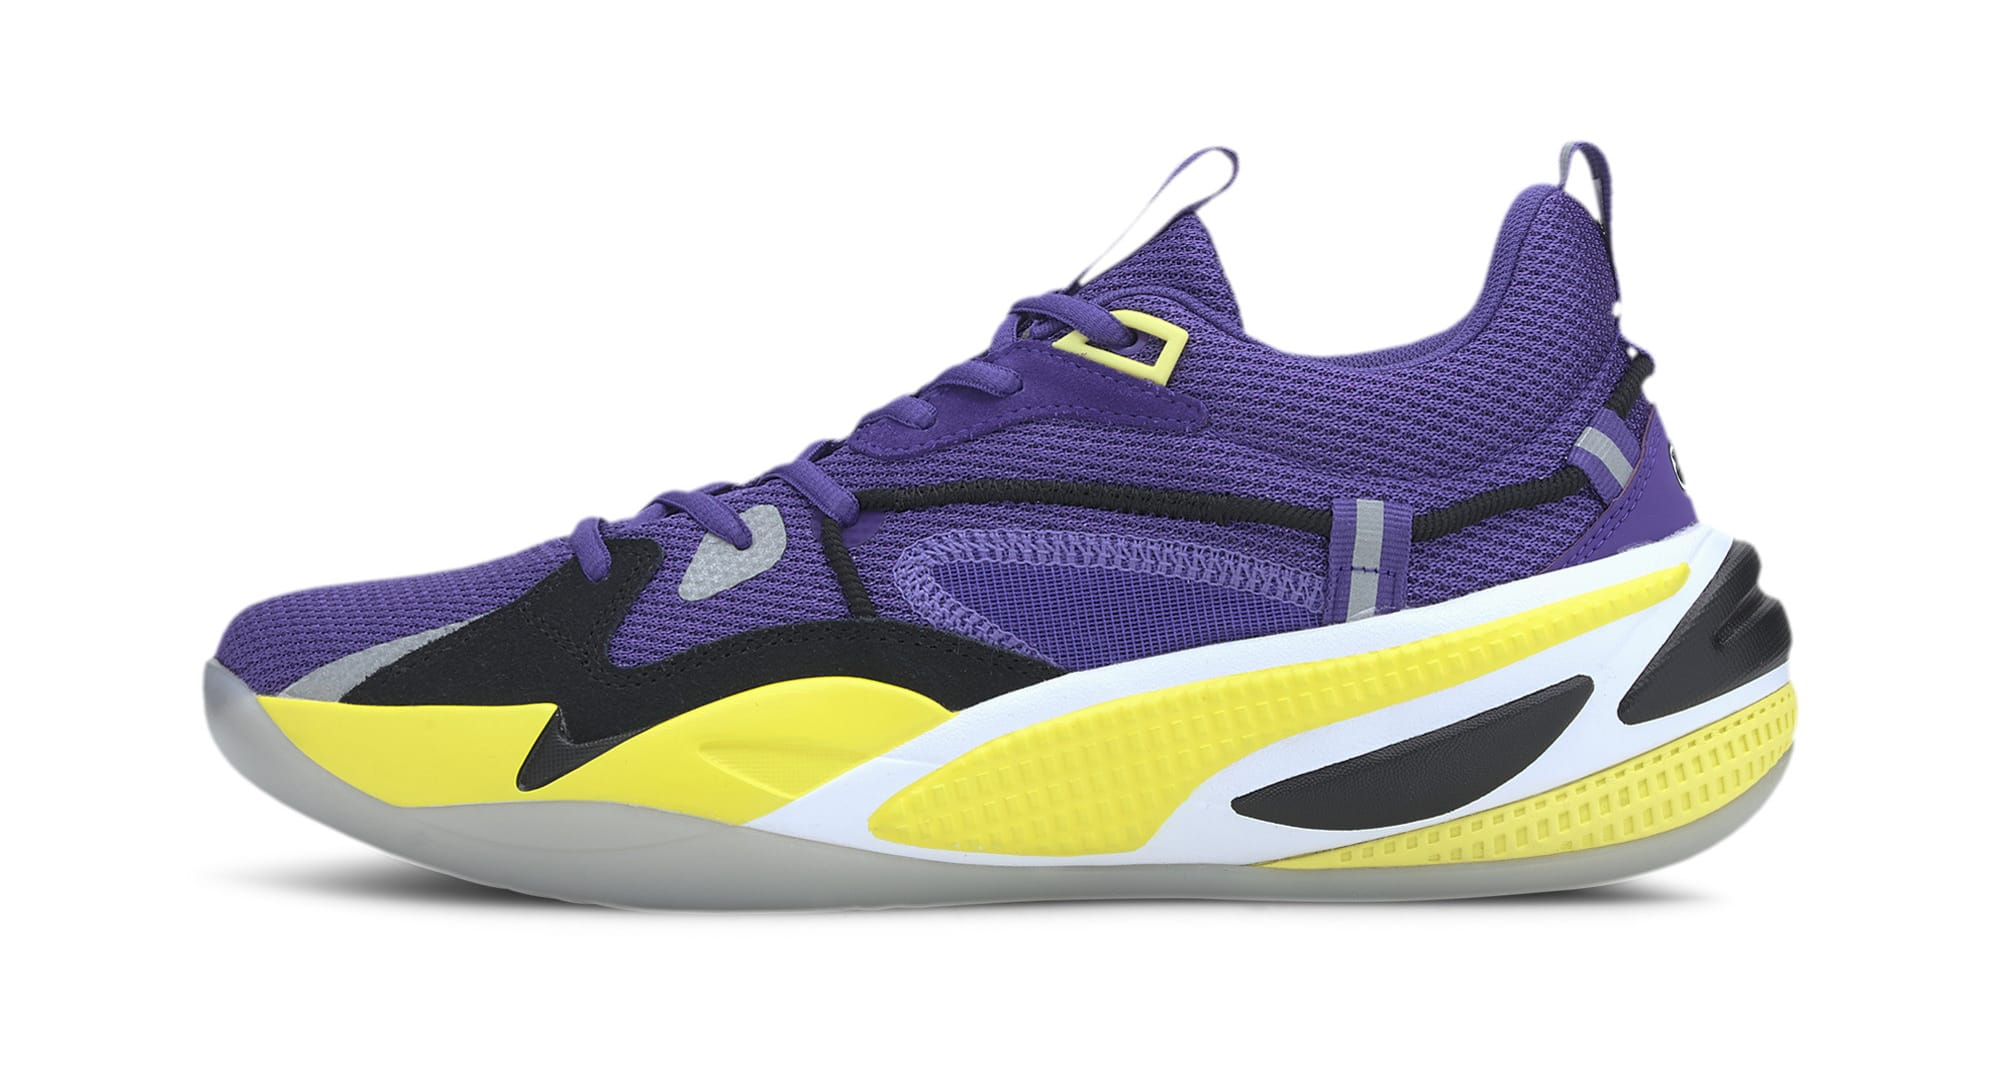 J. Cole x Puma RS-Dreamer 'Purple Heart' Lateral